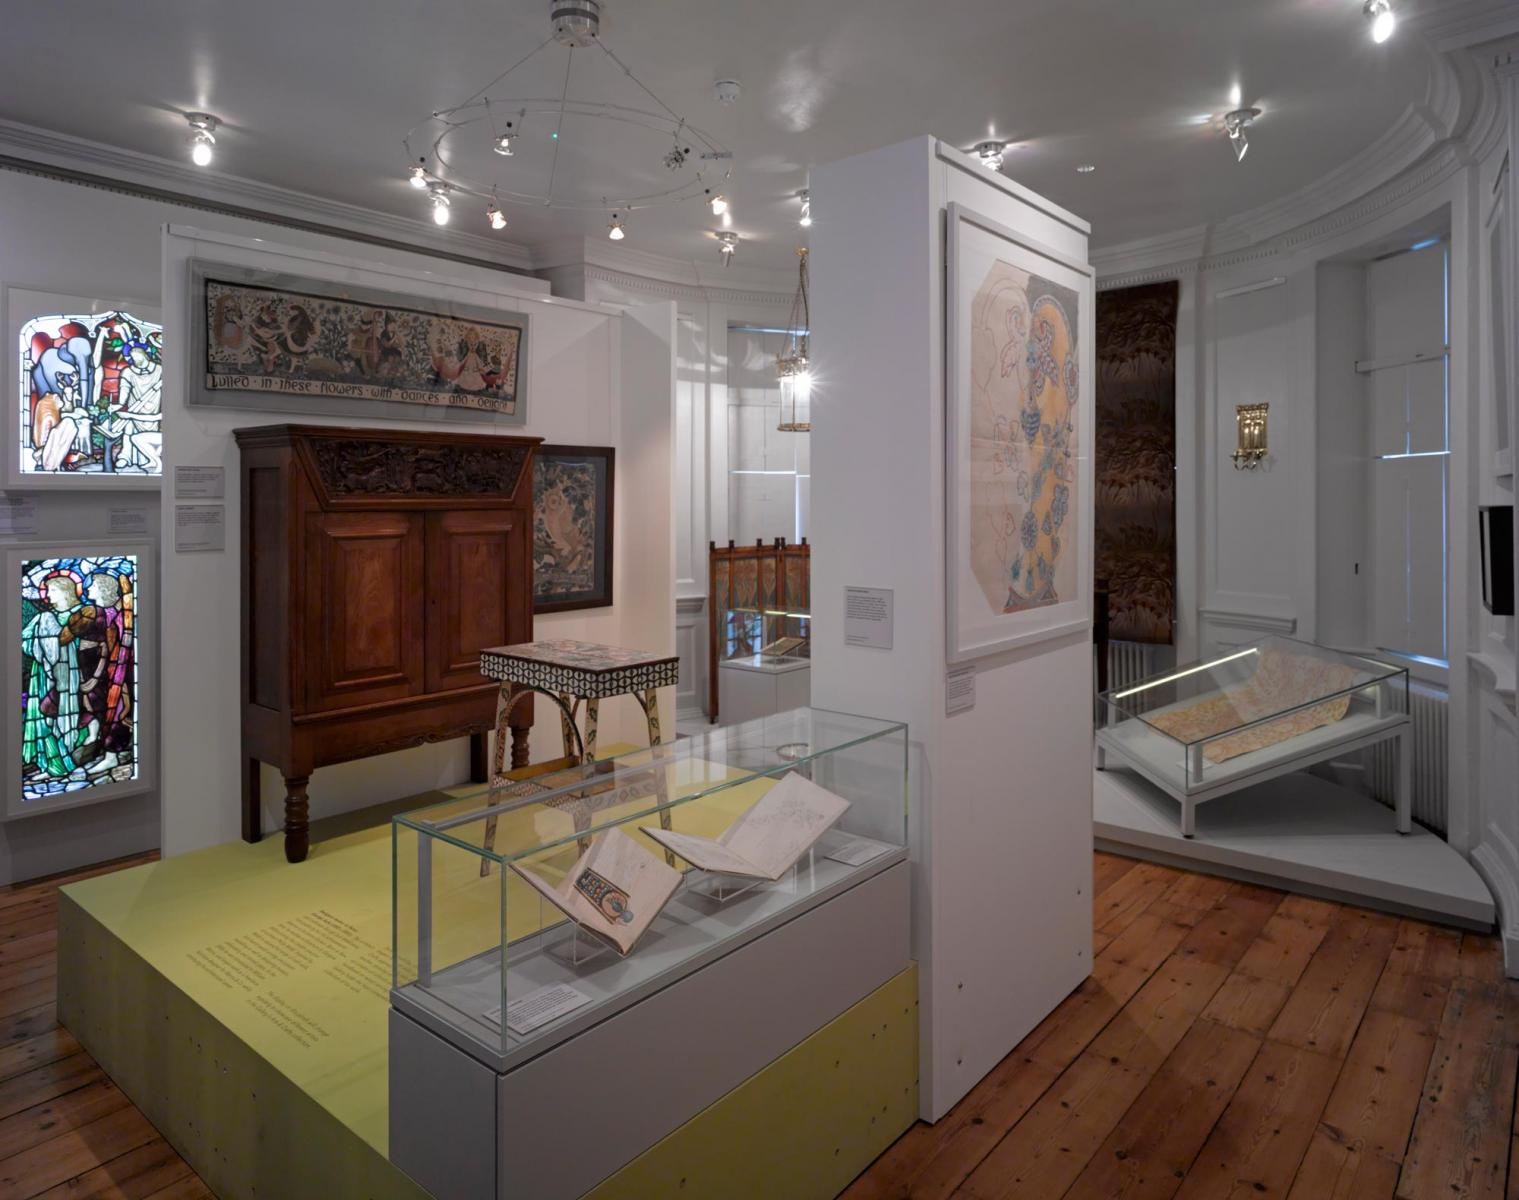 William Morris Gallery, Walthamstow, London - Gallery